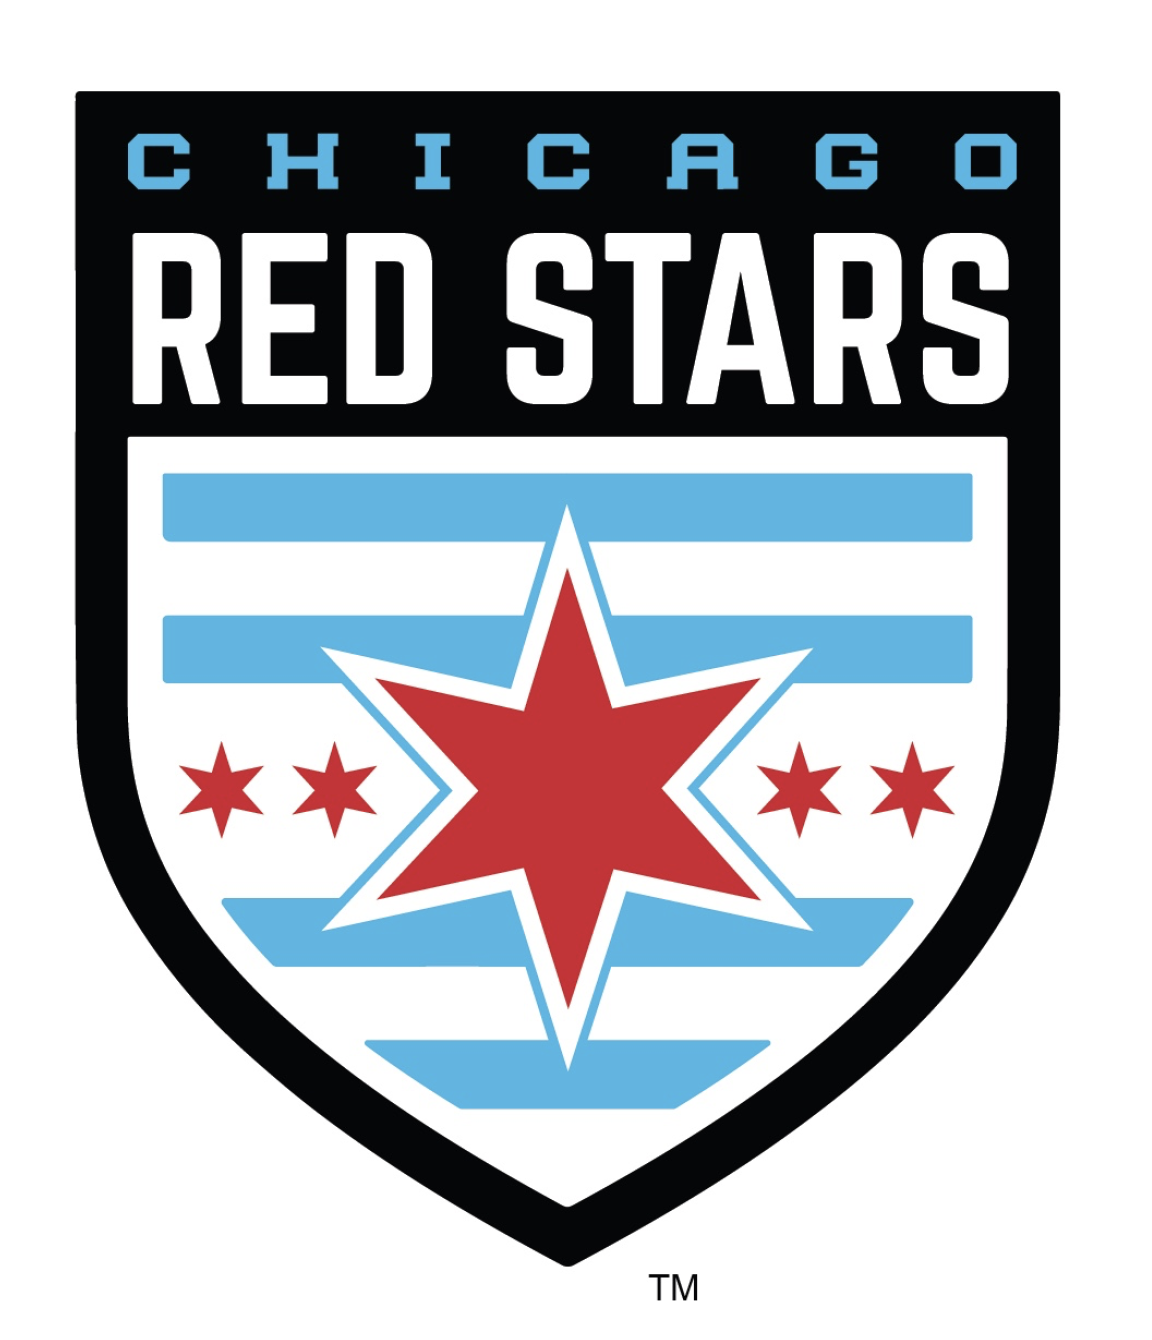 Chicago Red Stars vs. Orlando Pride